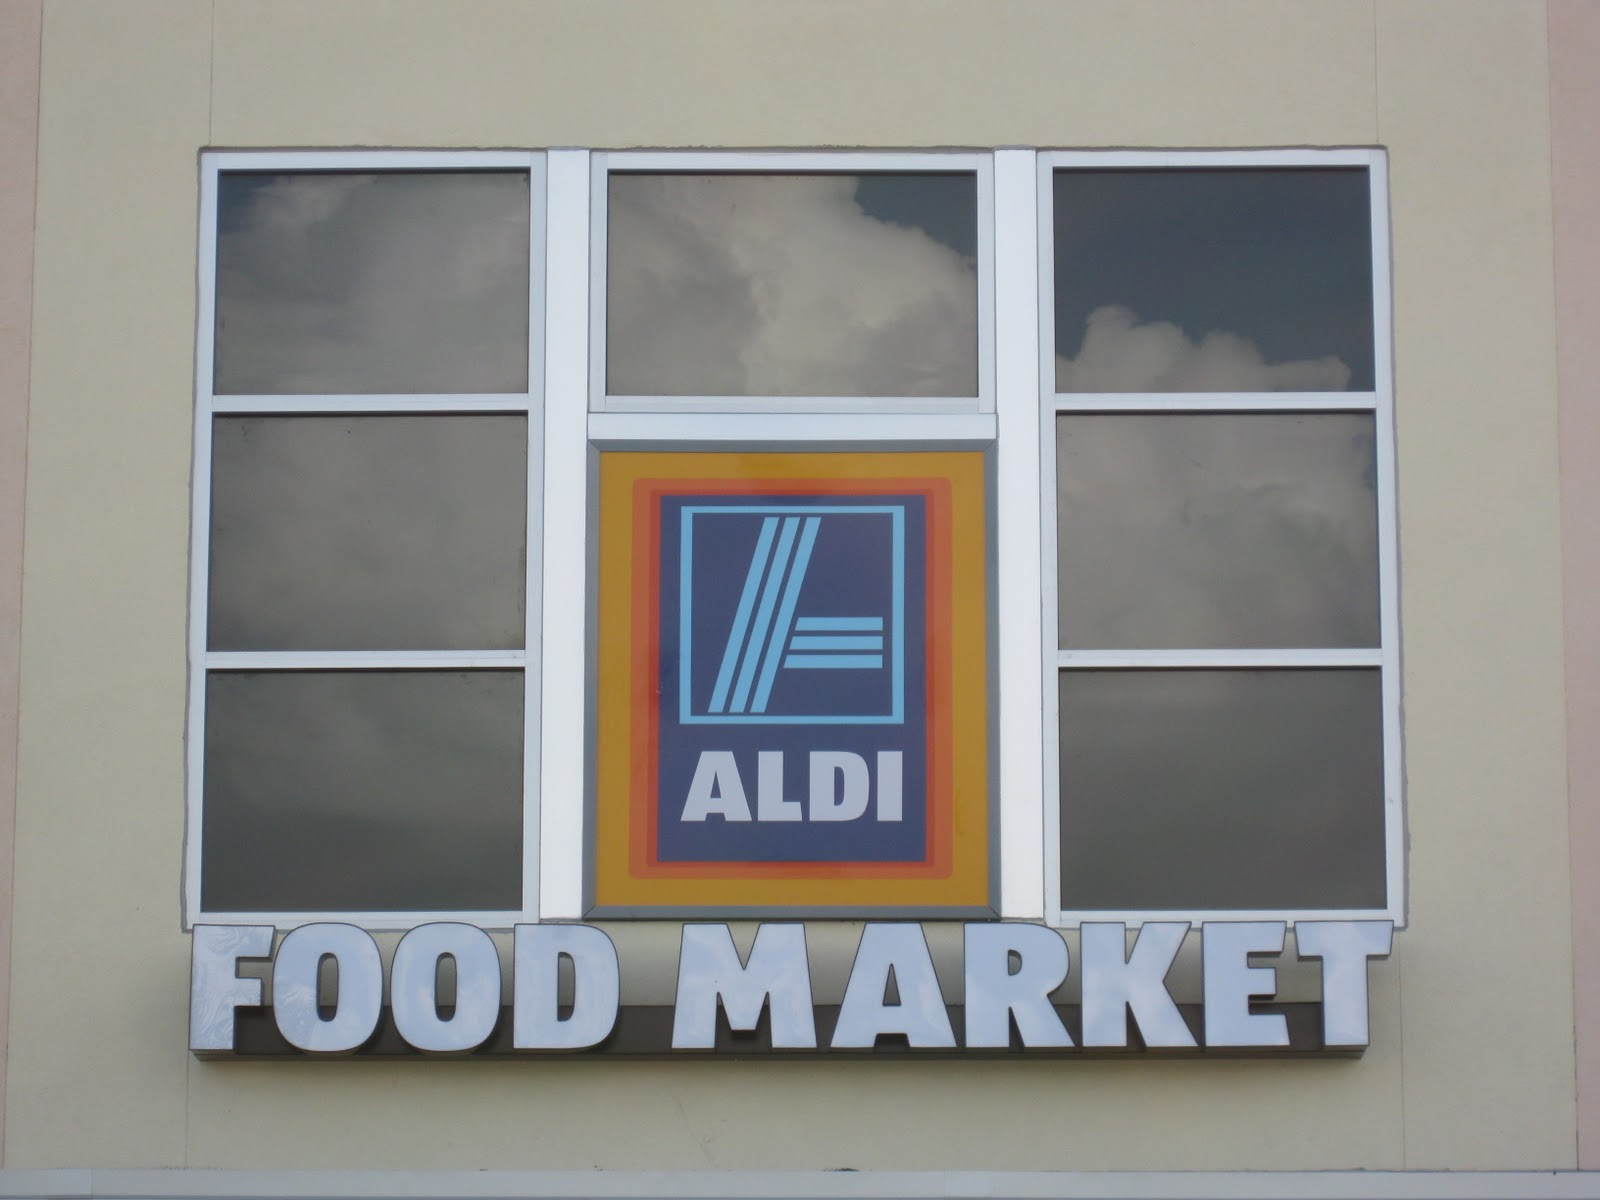 The Aldi Spot - Helping You Save: February 2011